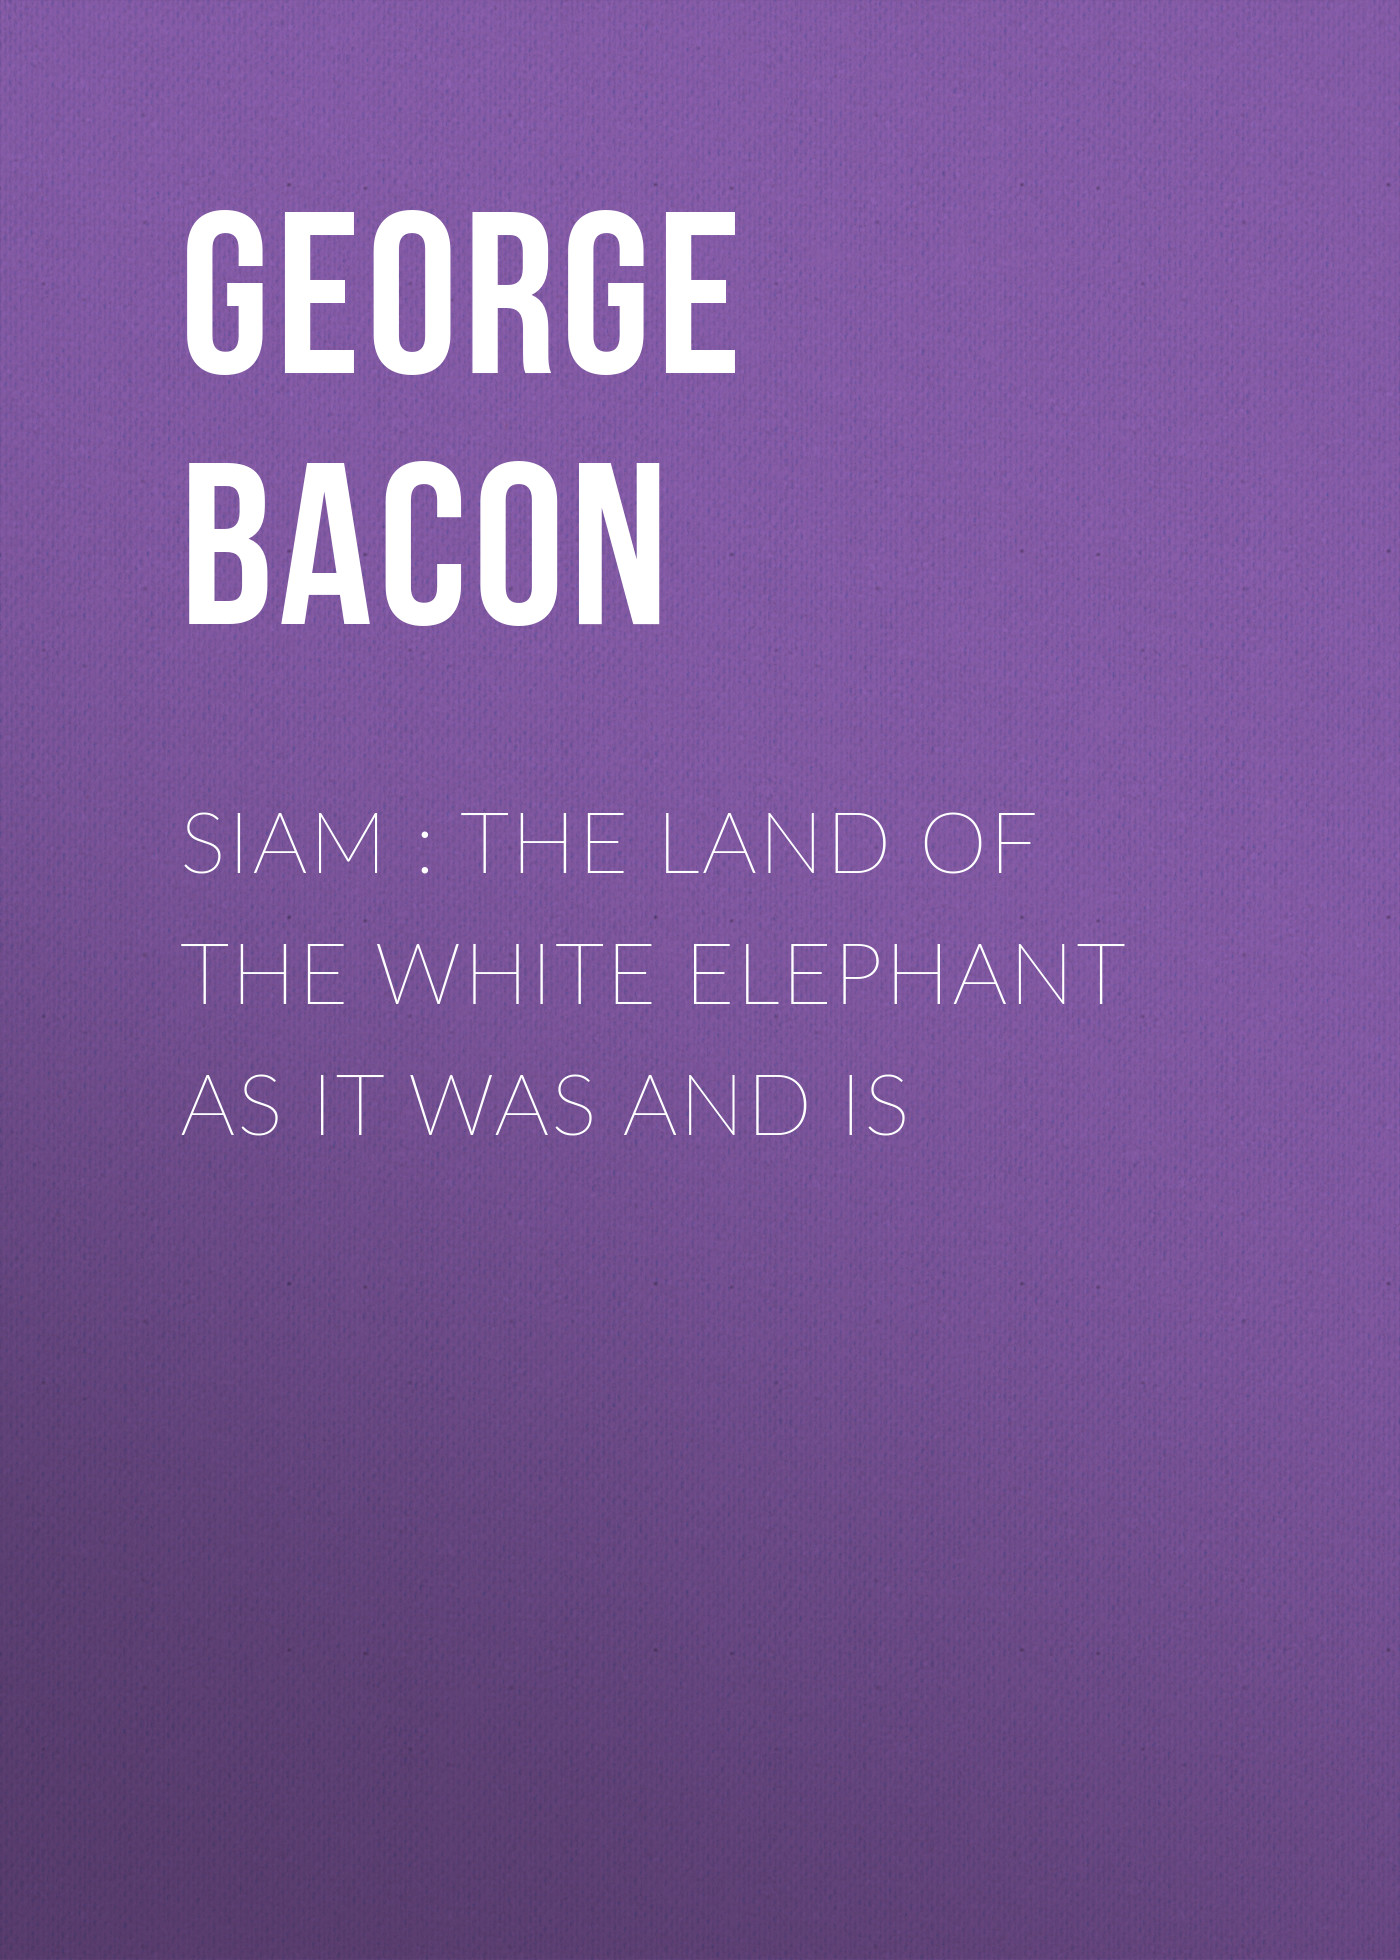 Bacon George Blagden Siam : The Land of the White Elephant as It Was and Is as it is hamburg